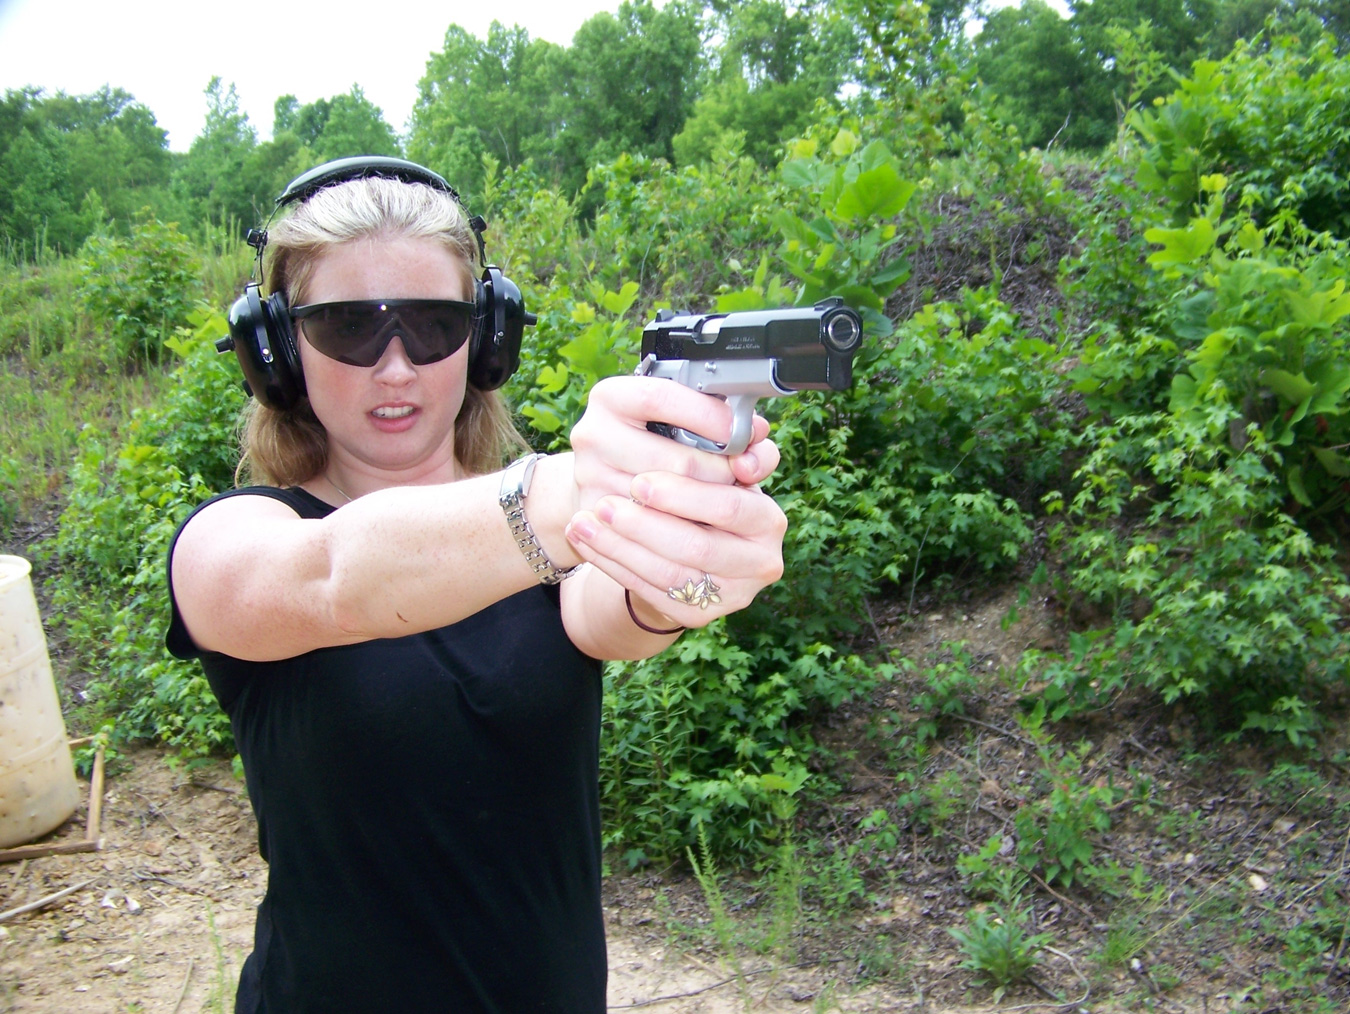 Woman shooting a hi-power pistol